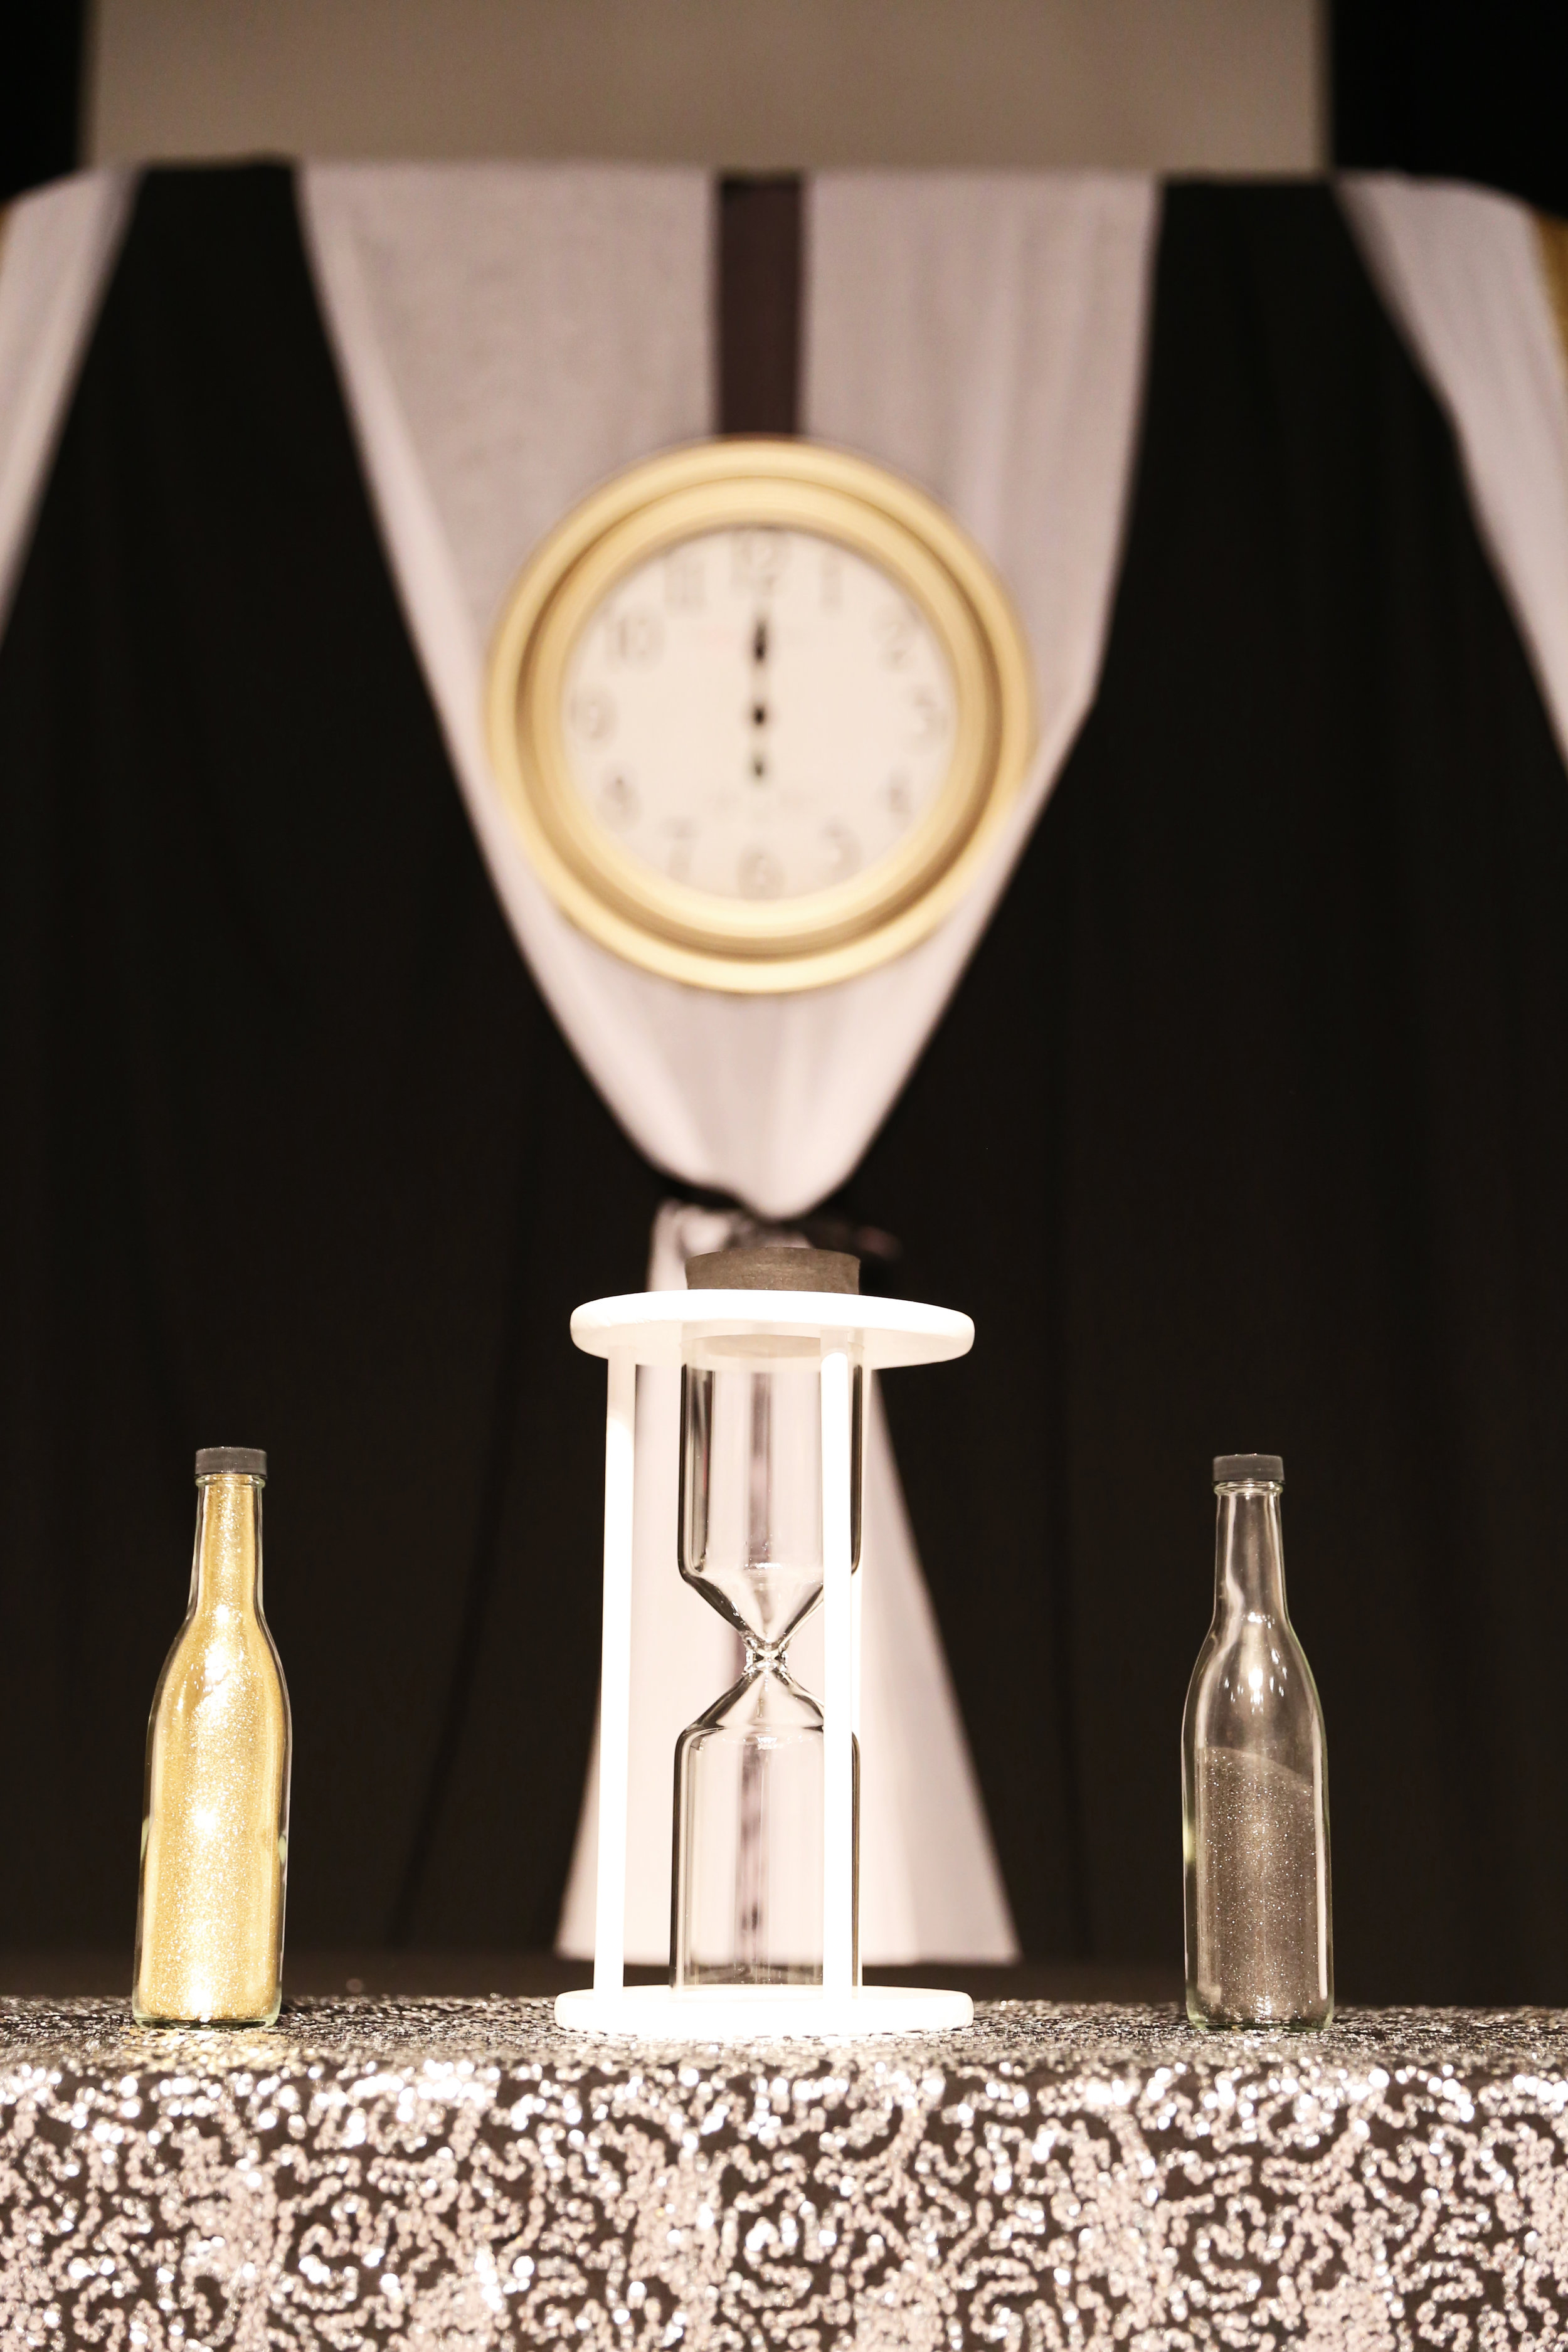 The ceremony aisle was accented with decorative clocks, and the pair partook in a unity ceremony wherein they blended sand into an hourglass, all in honor of the NYE countdown.